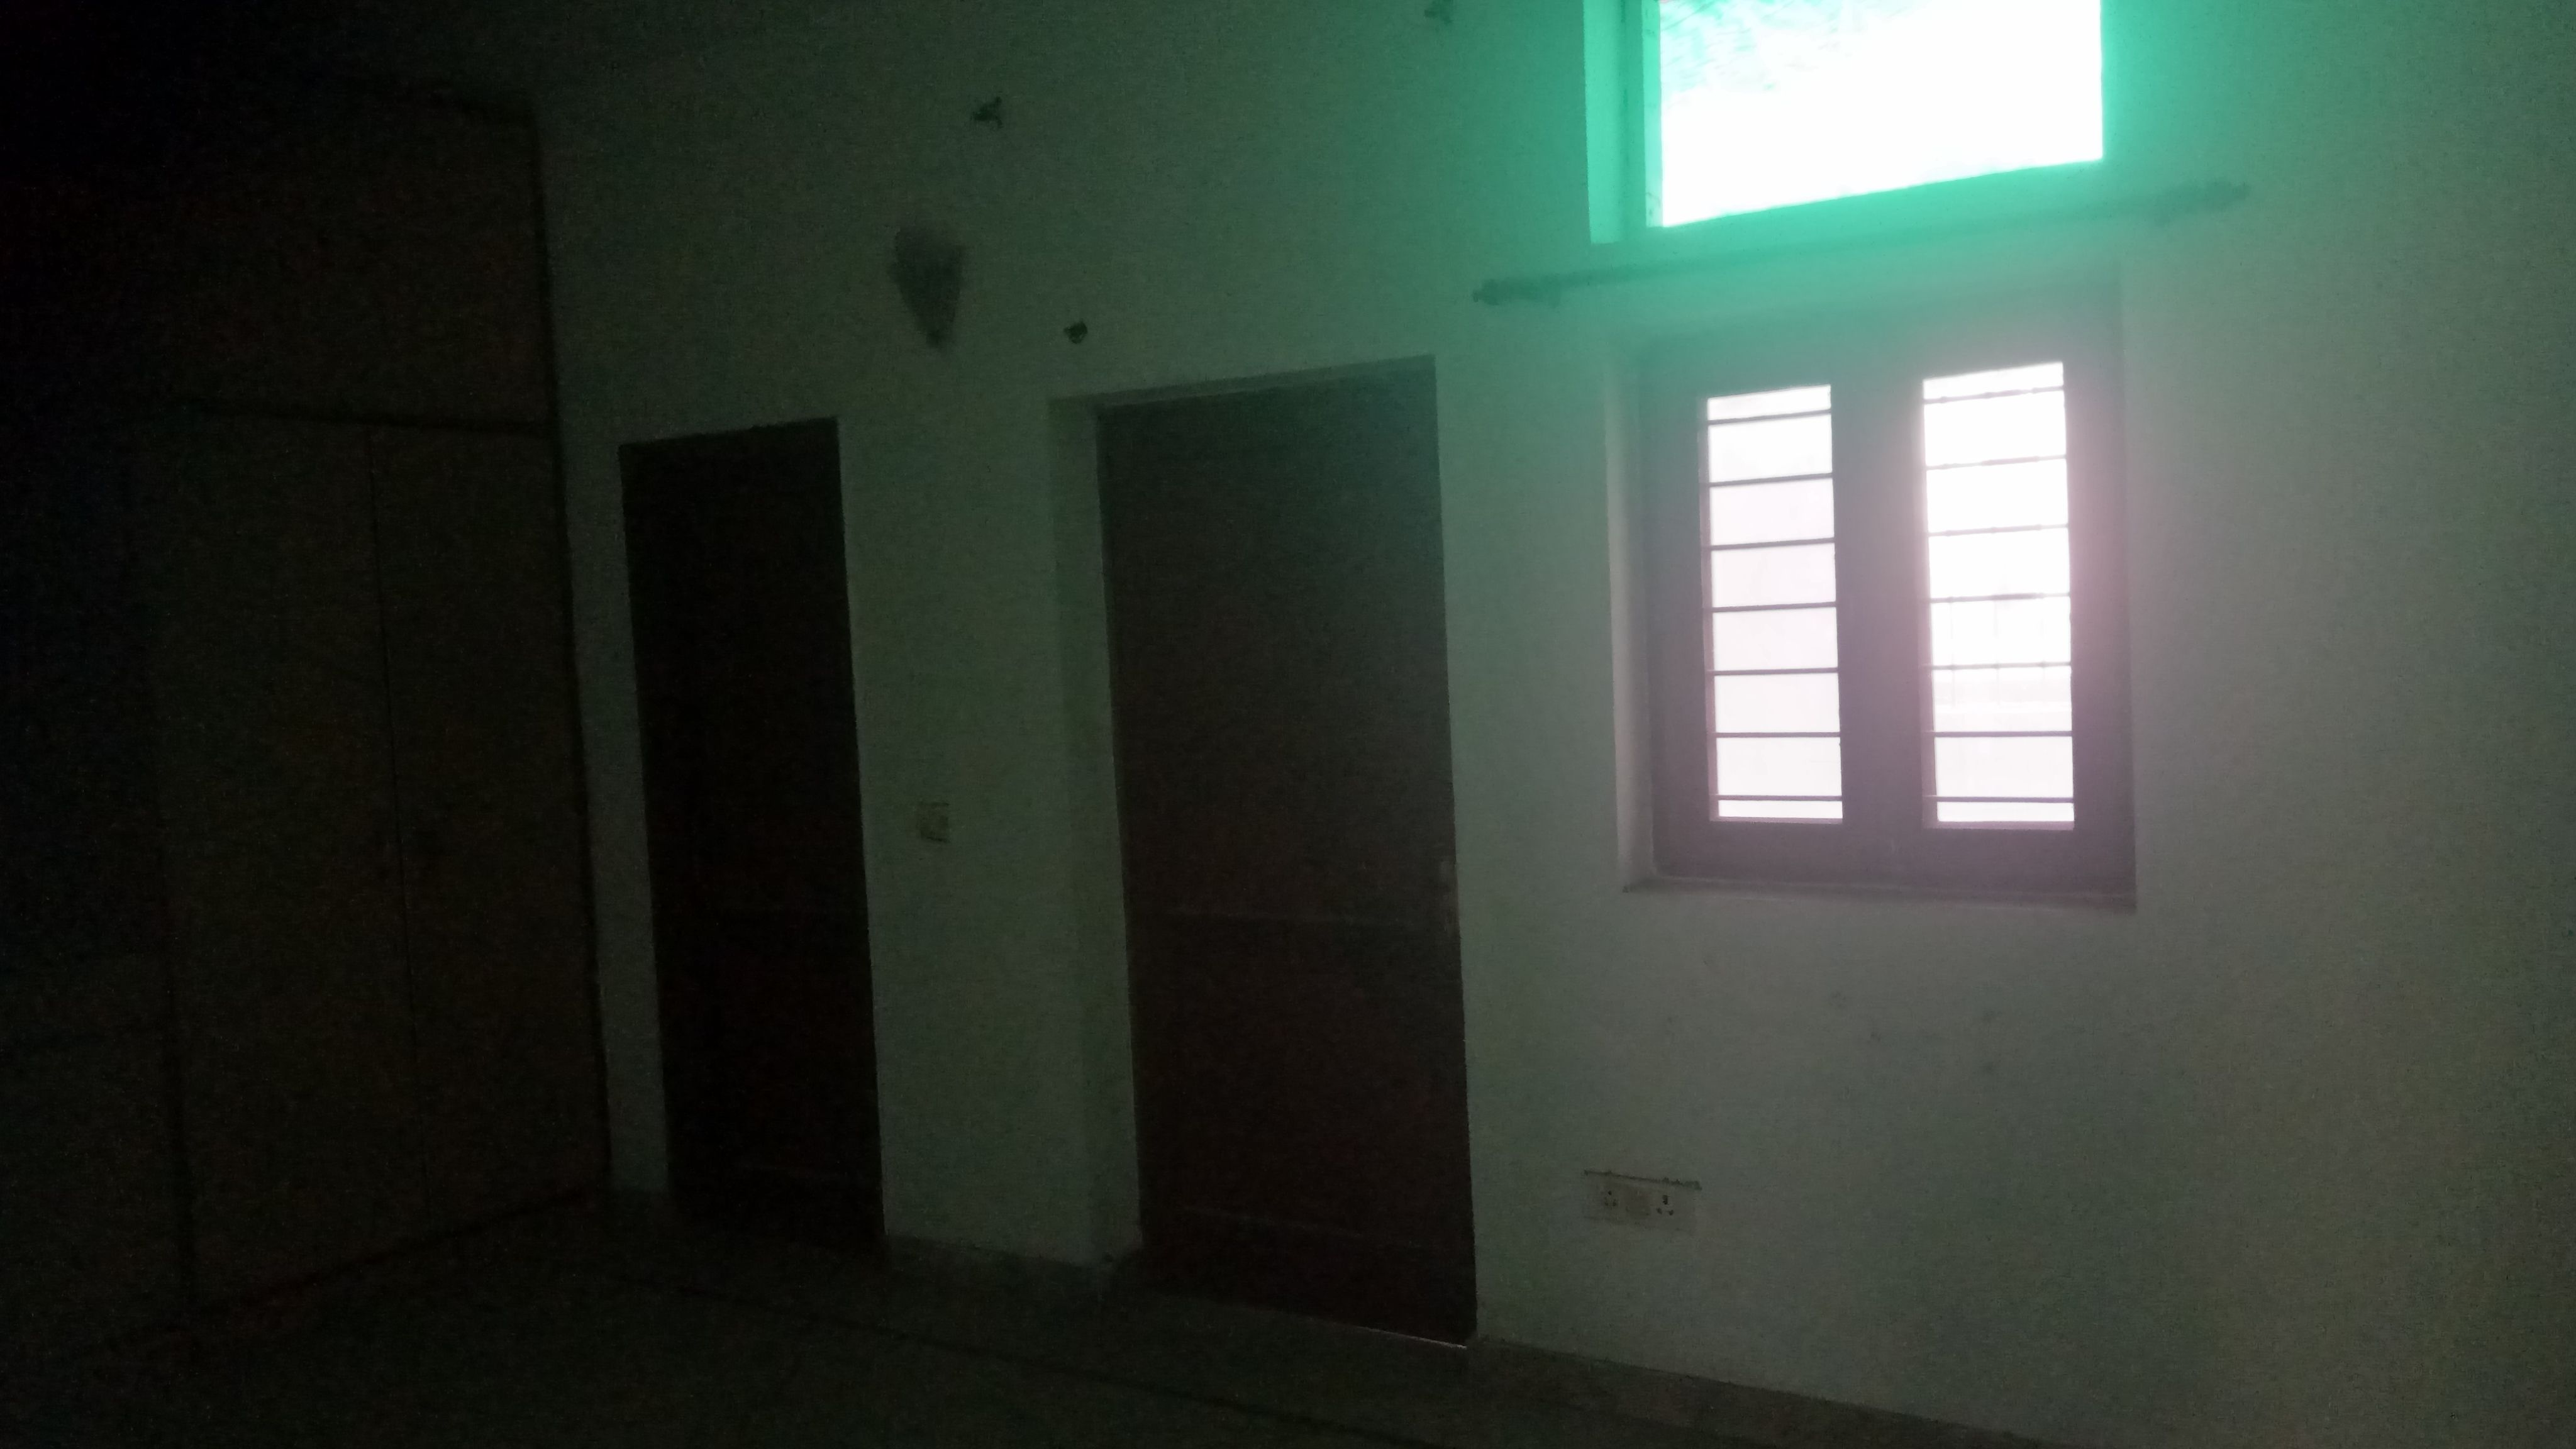 Contact us Home fice House showroom Hospital residential mercial Building hotel old restaurant farmhouse